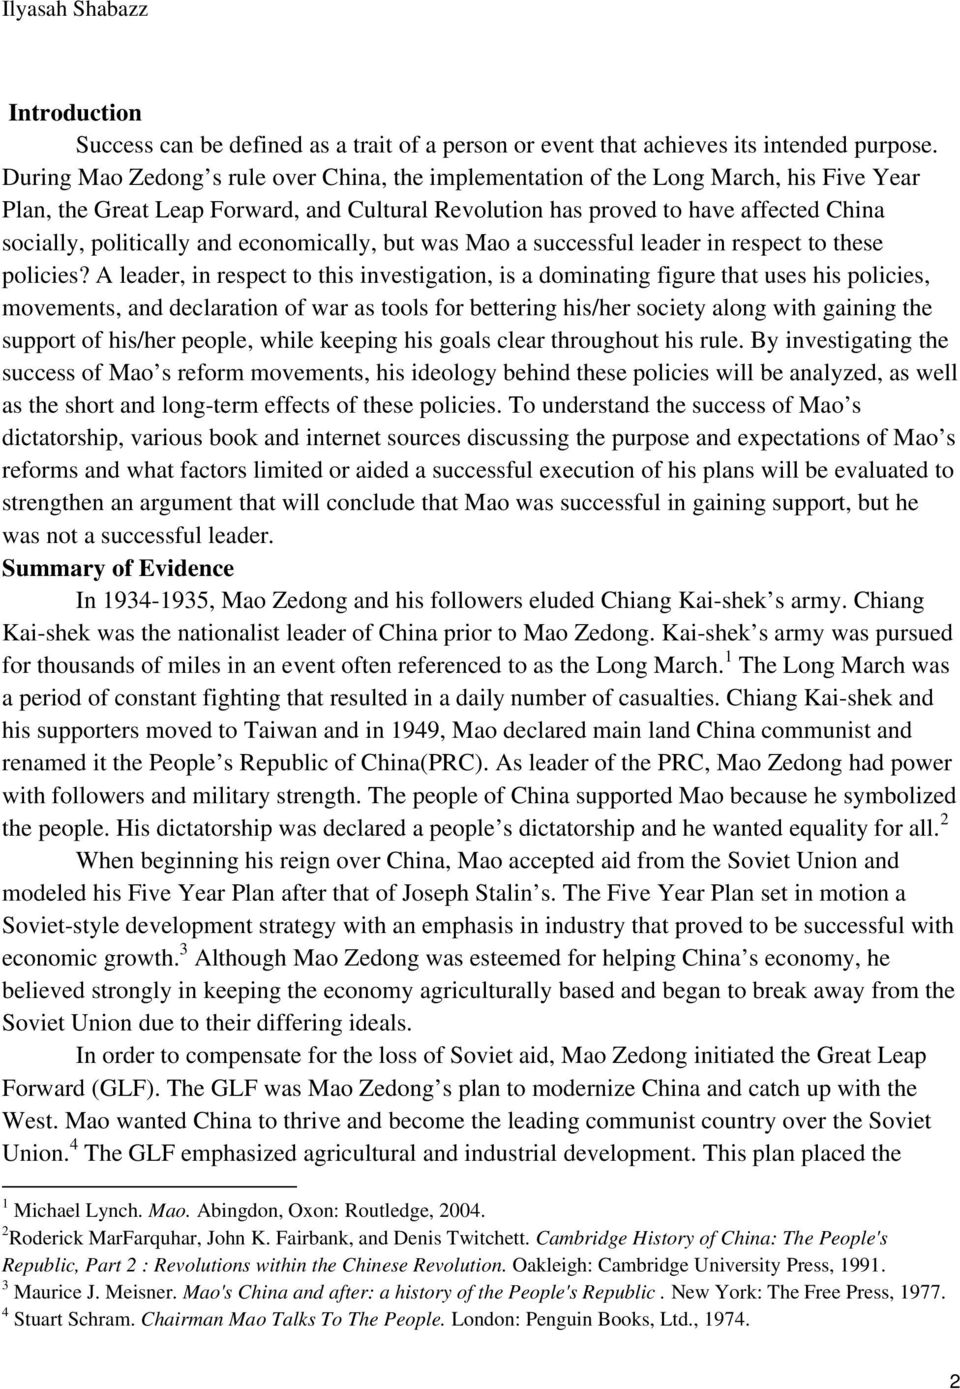 and economically, but was Mao a successful leader in respect to these policies?